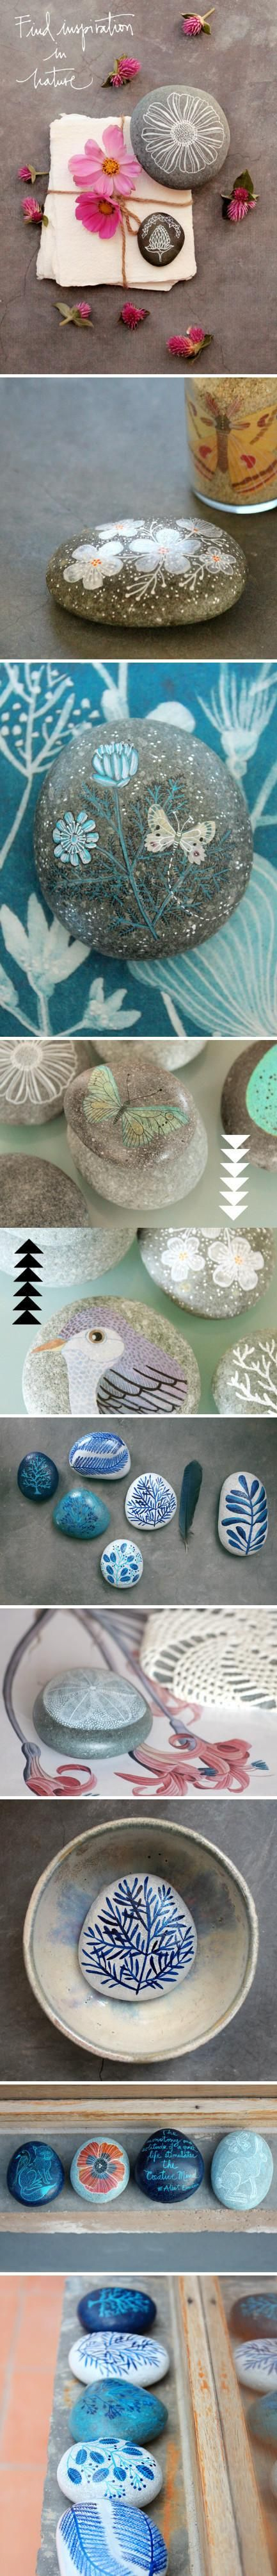 love those: Paintings Rocks, Paper Weights, Paintings Stones, Paperweights, Stones Paintings, Cool Ideas, Stones Crafts, Rocks Art, Rocks Paintings